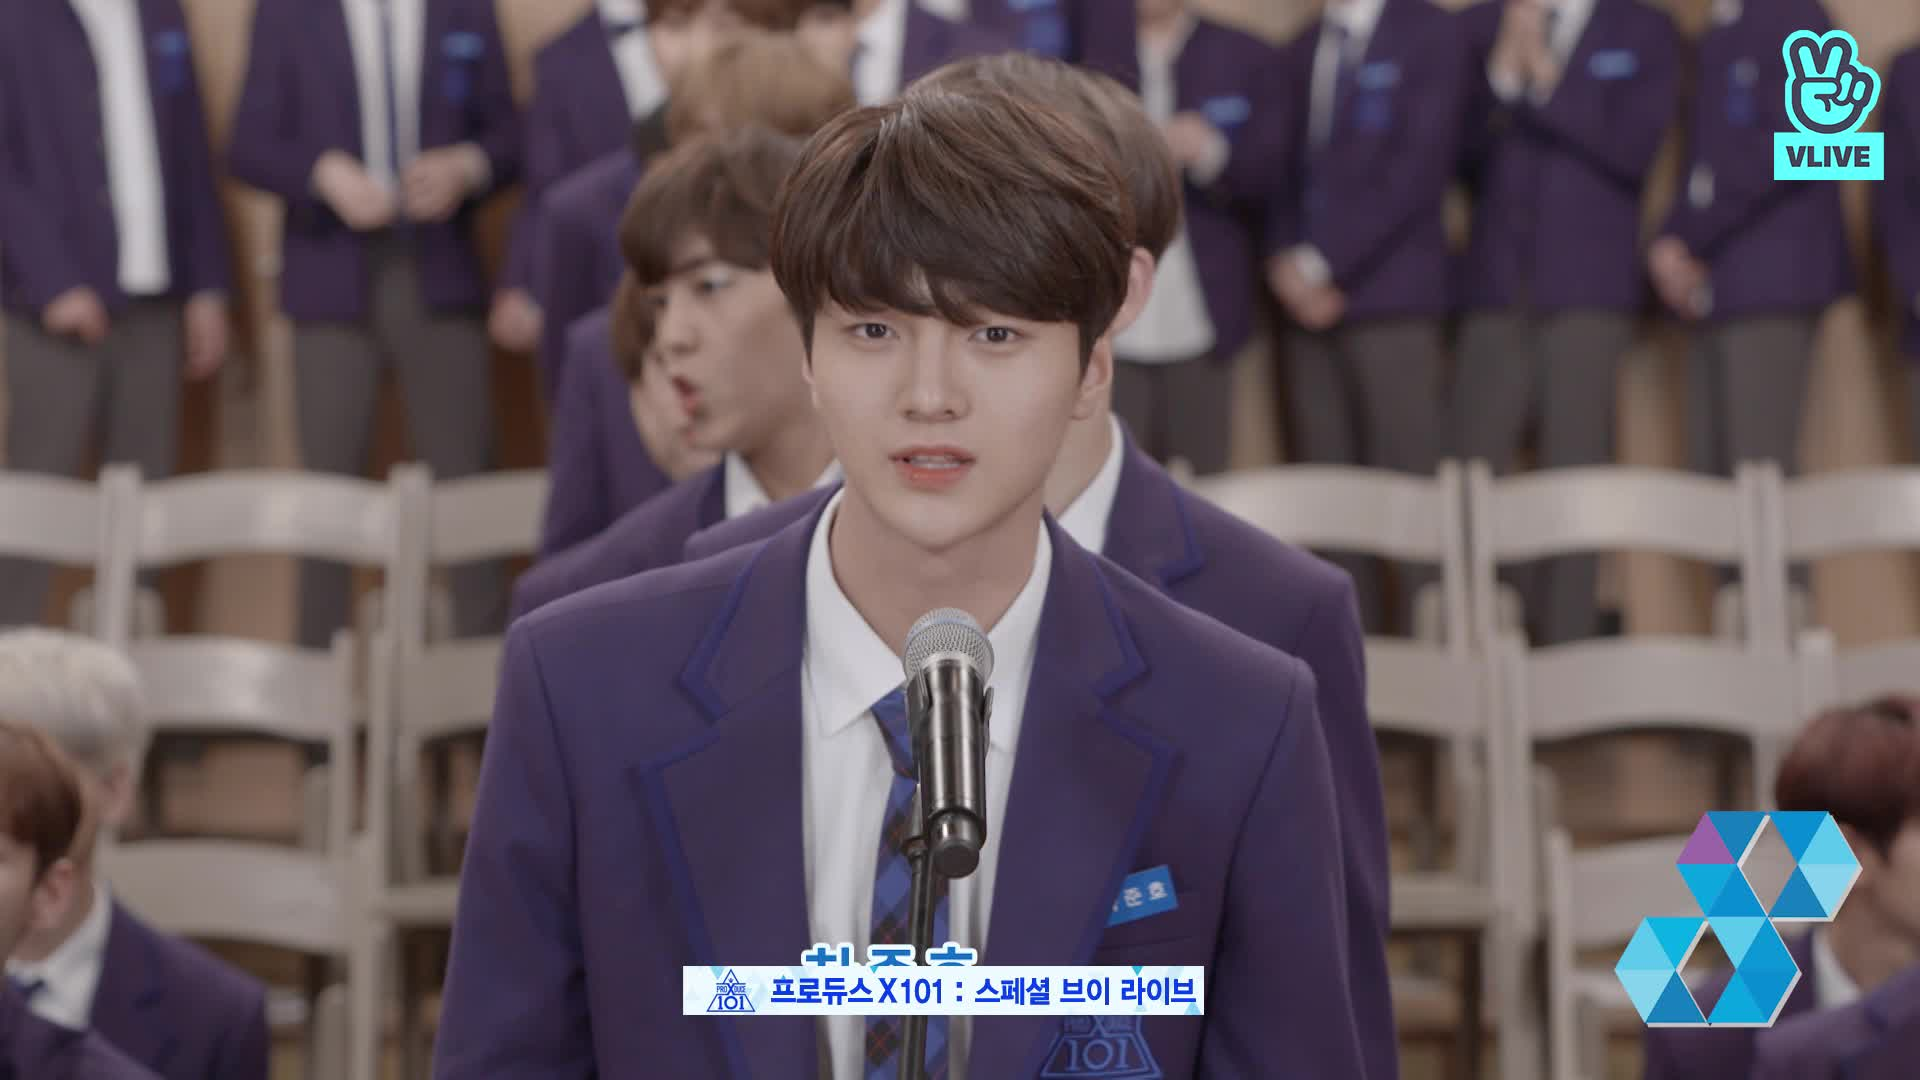 [PRODUCE X 101] 10sec. PR / CHA JUN HO